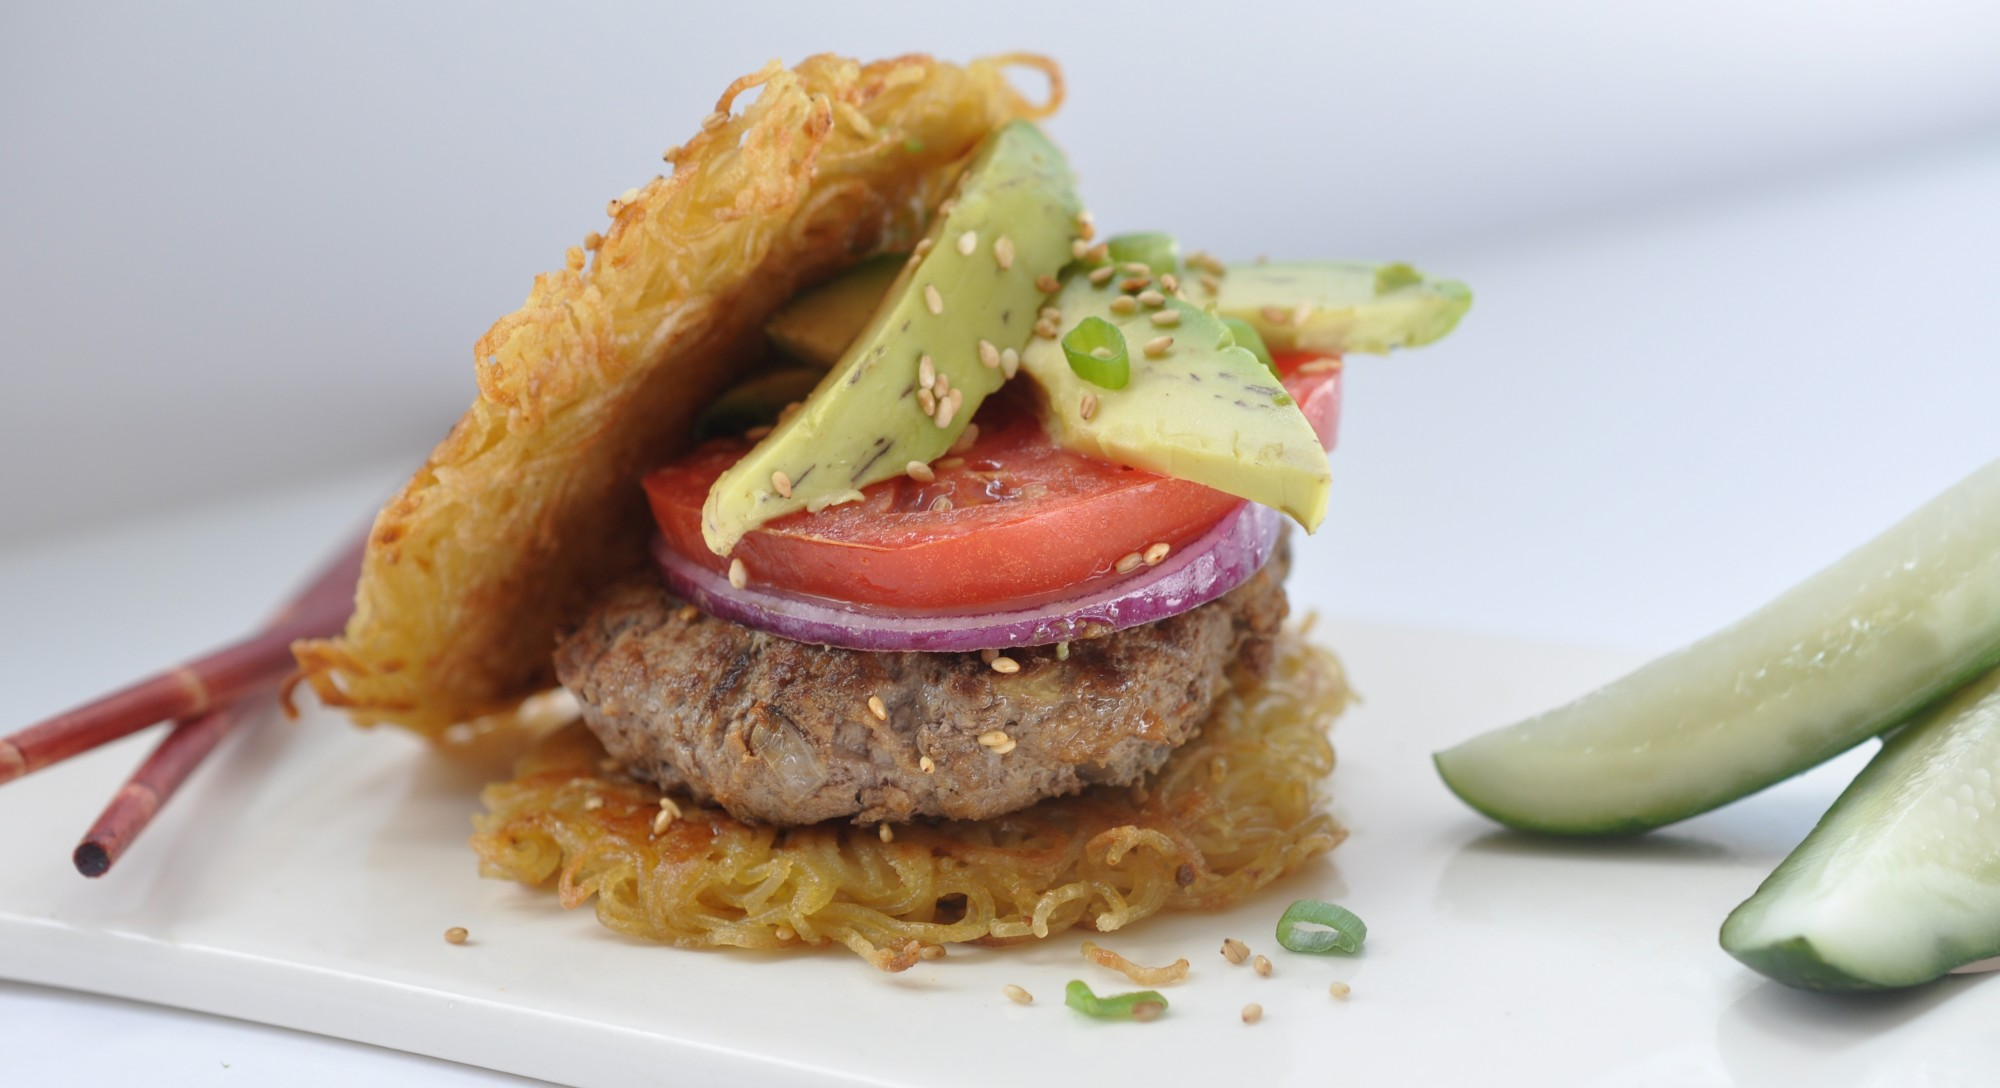 How to Make Your Own Gluten-Free (and Instagram-Worthy!) Ramen Burger